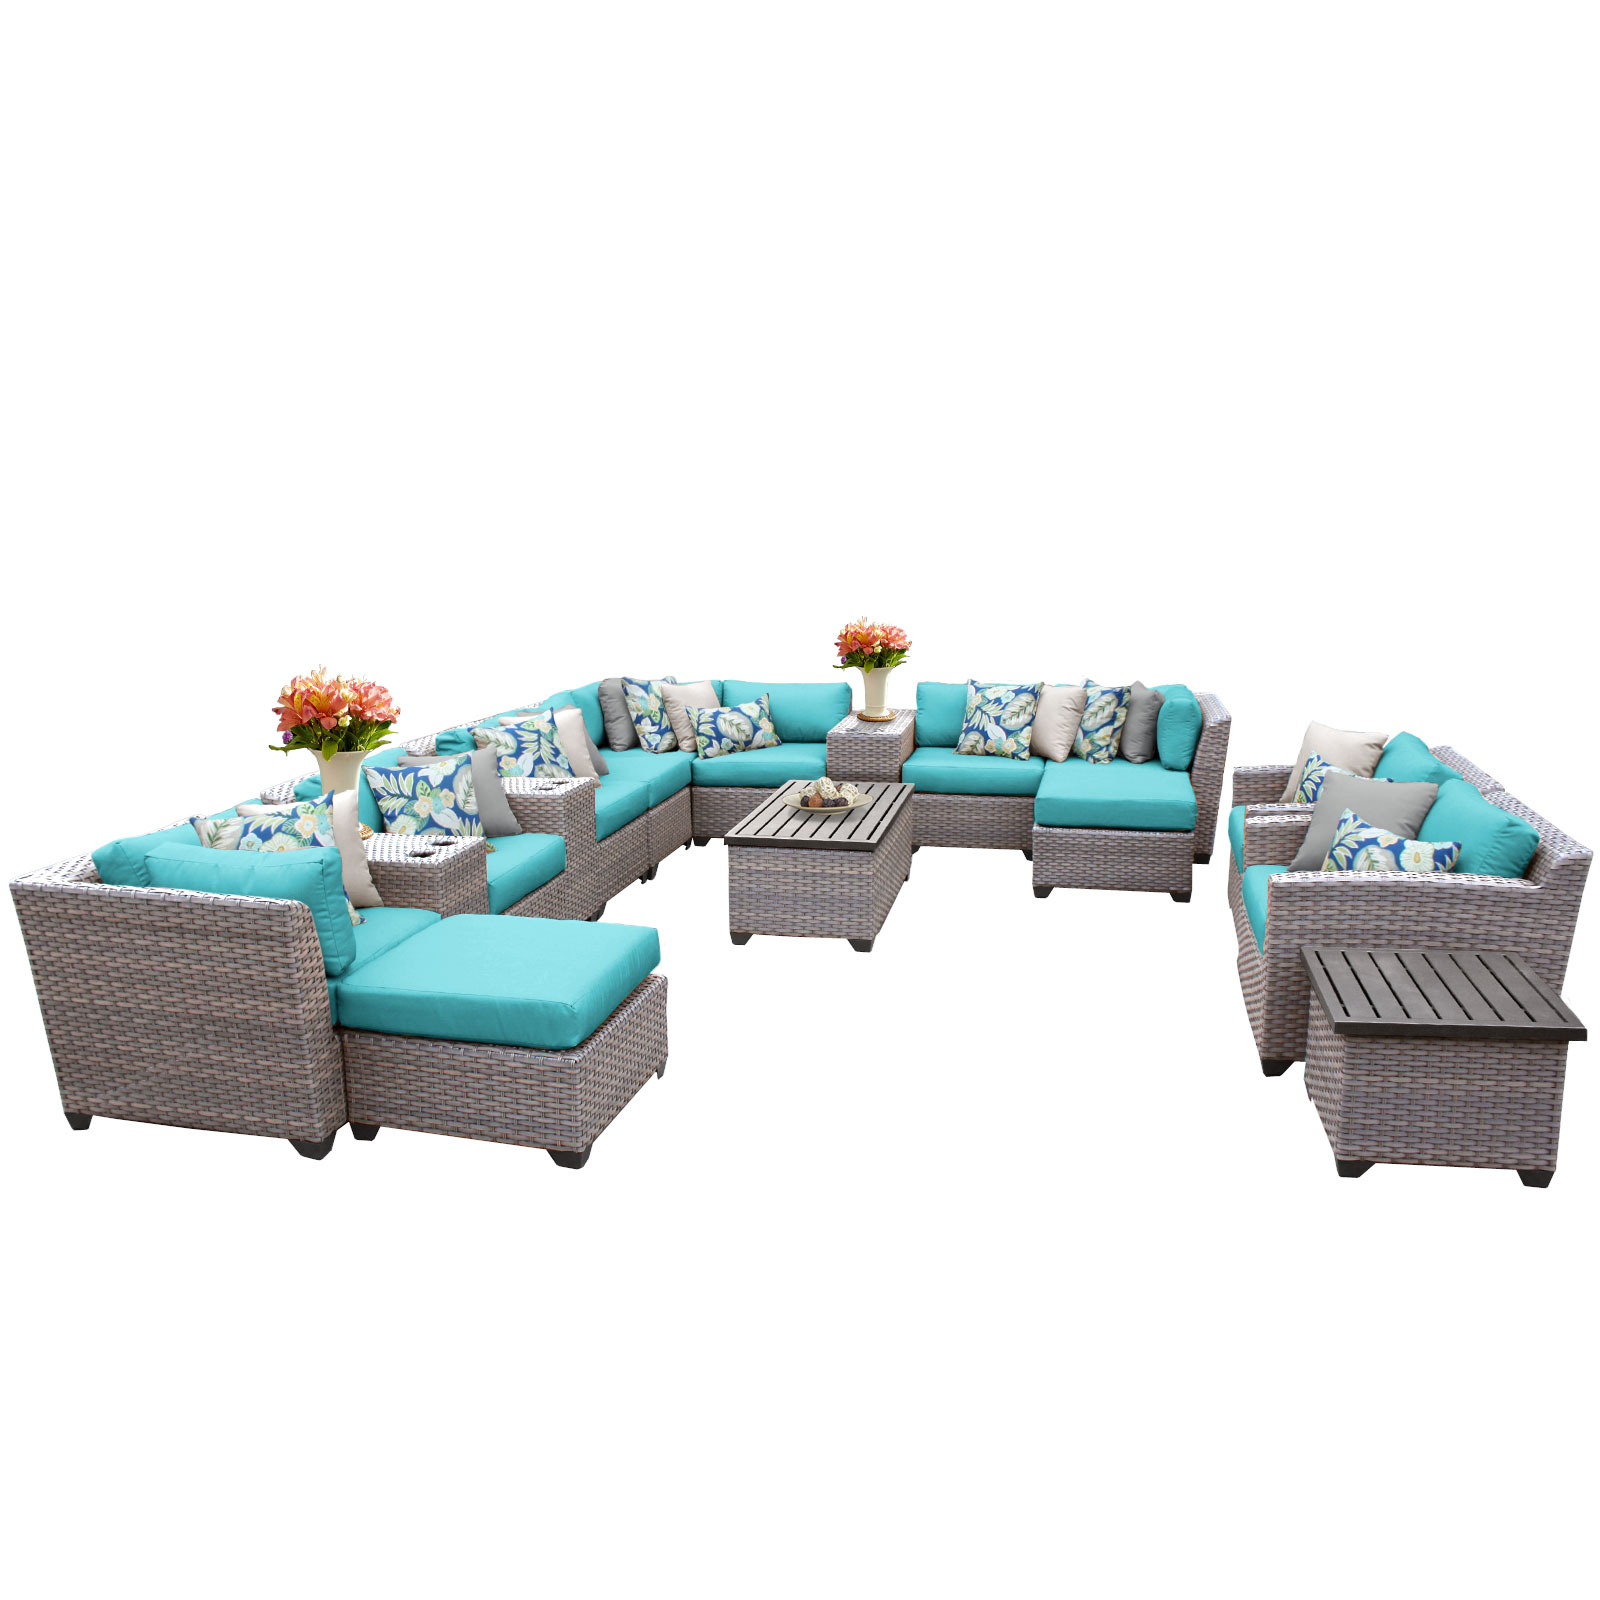 Catalina 17 Piece Outdoor Wicker Patio Furniture Set 17a by TK Classics